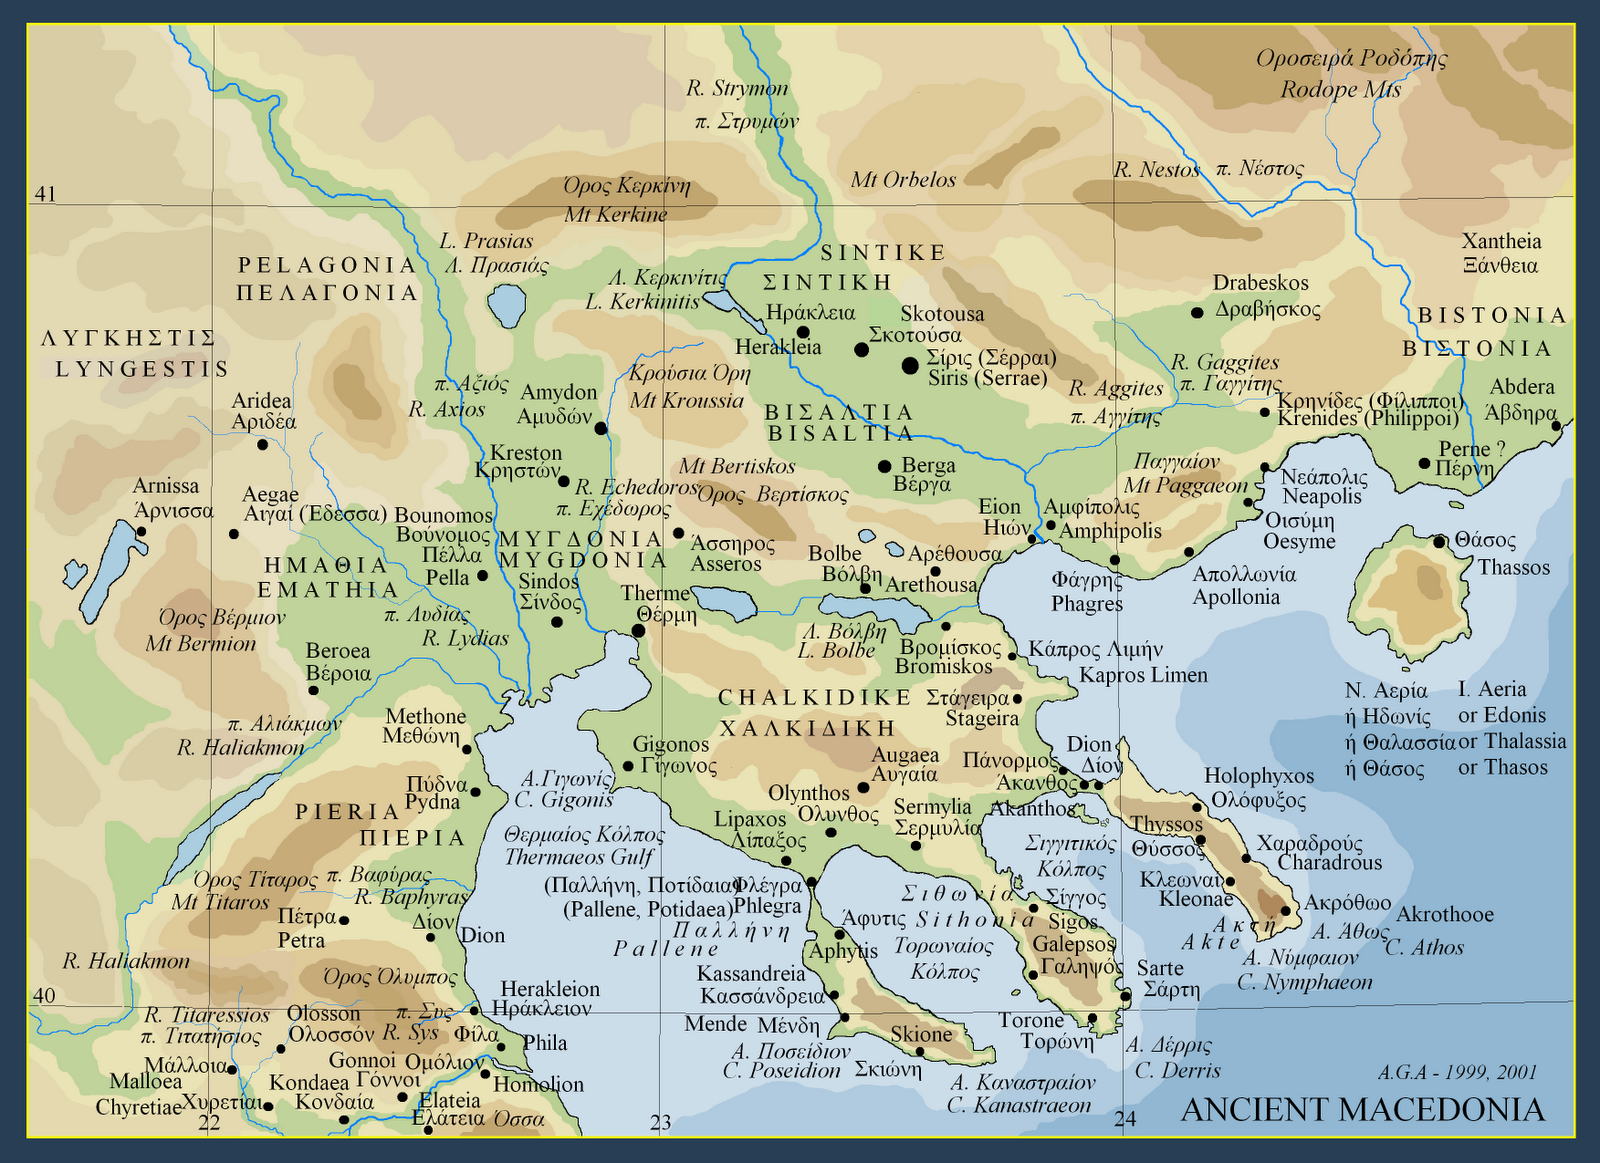 Metron Ariston: Ancient Thessaly and Macedonia